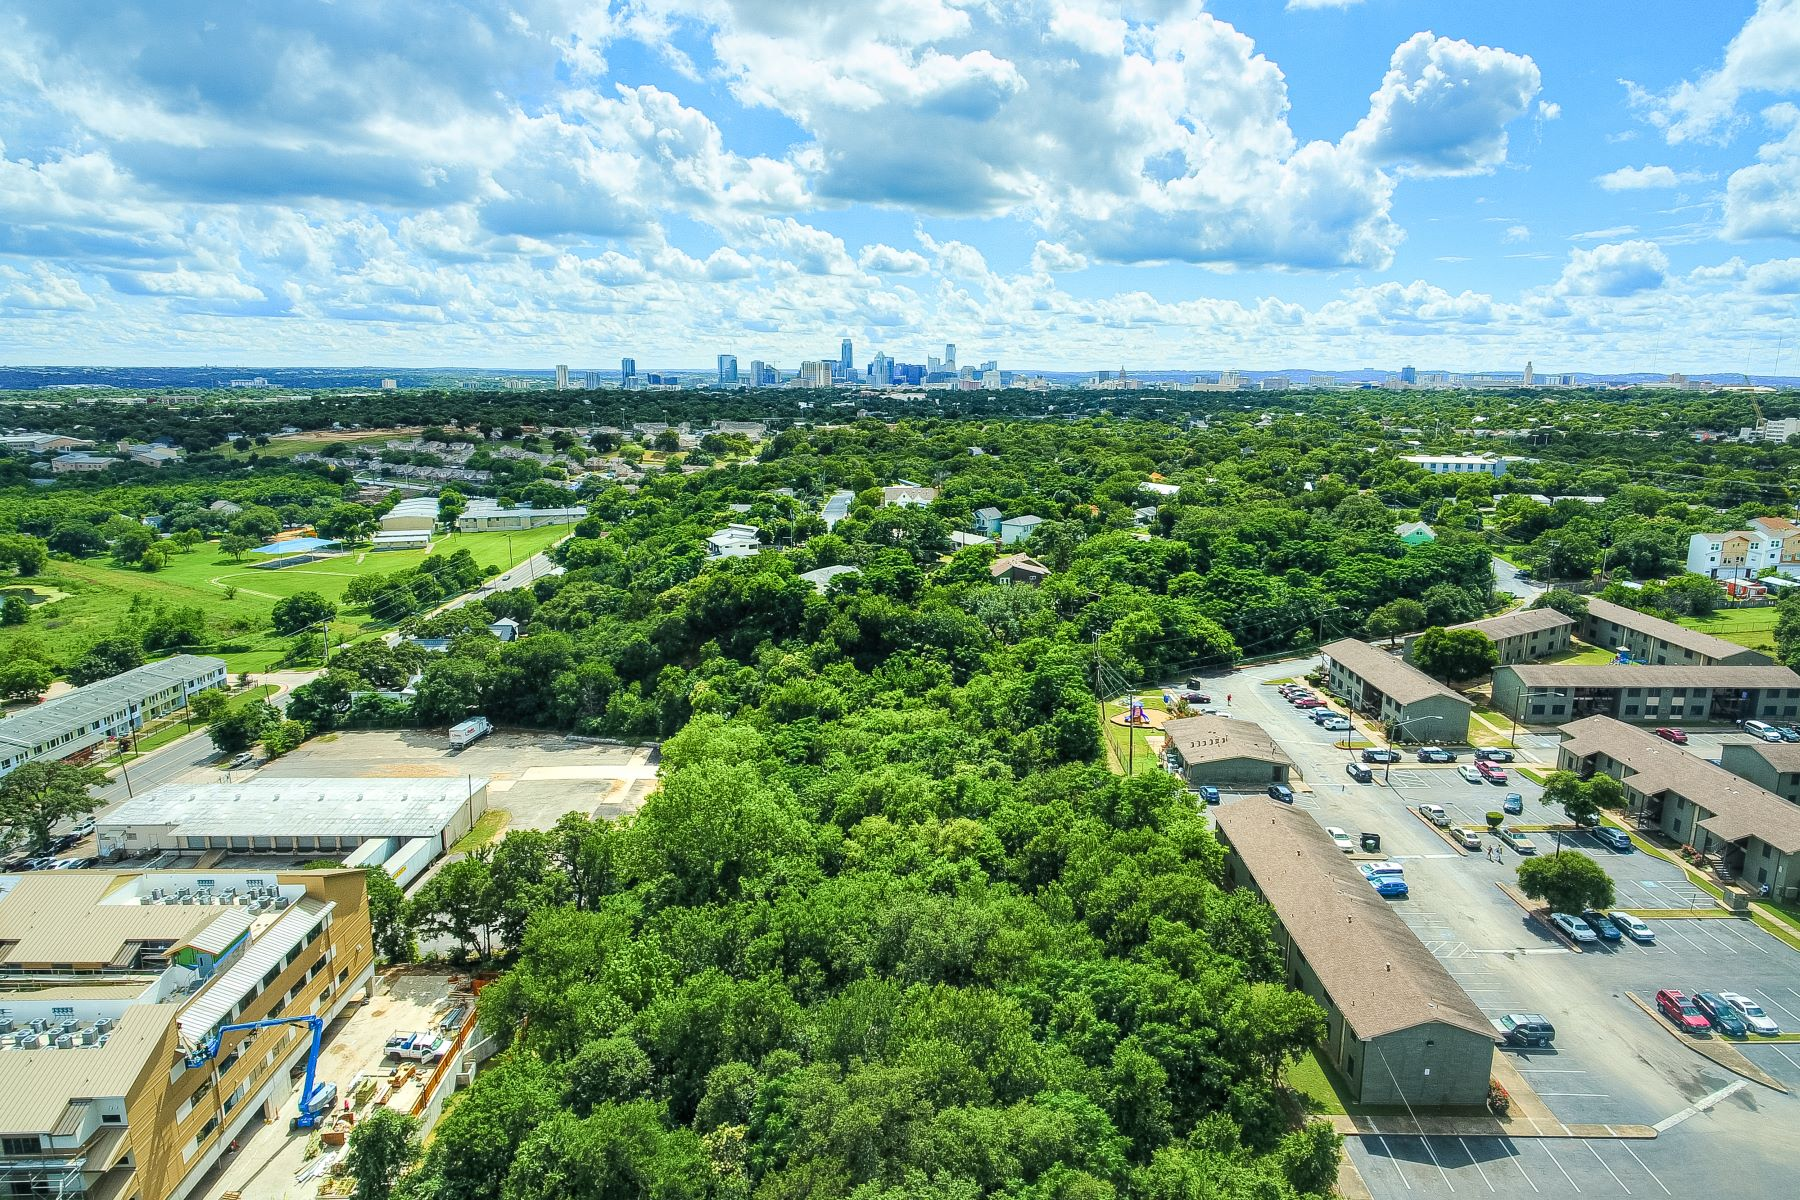 Land for Sale at Gorgeous lot for potential residential development 1100 Harvey Street, Austin, Texas 78702 United States